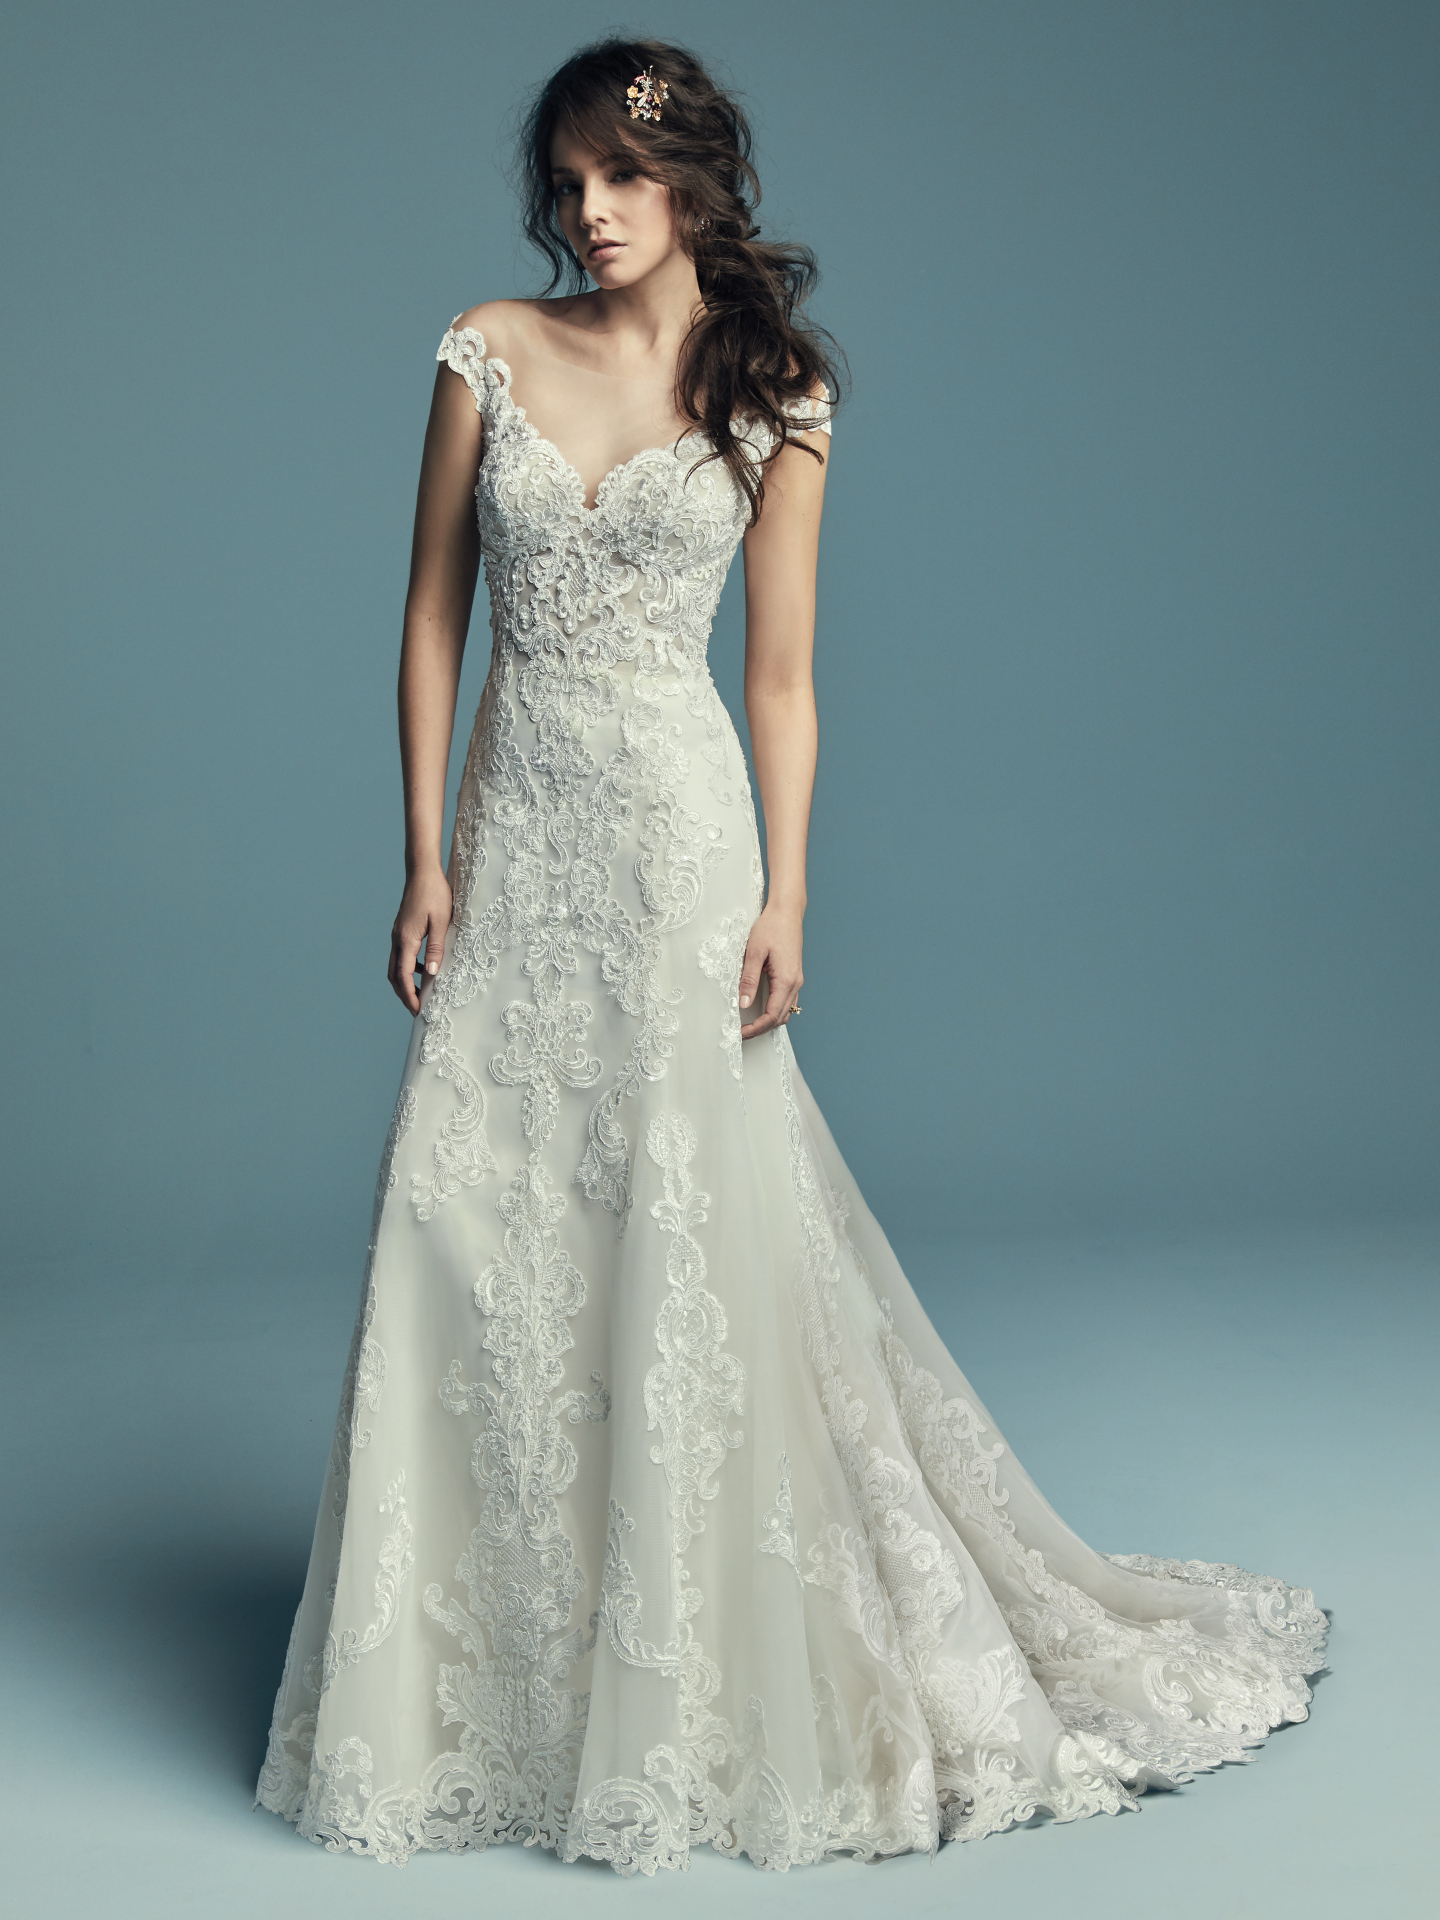 New Boho Wedding Dresses from the Lucienne Collection - Serena by Maggie Sottero